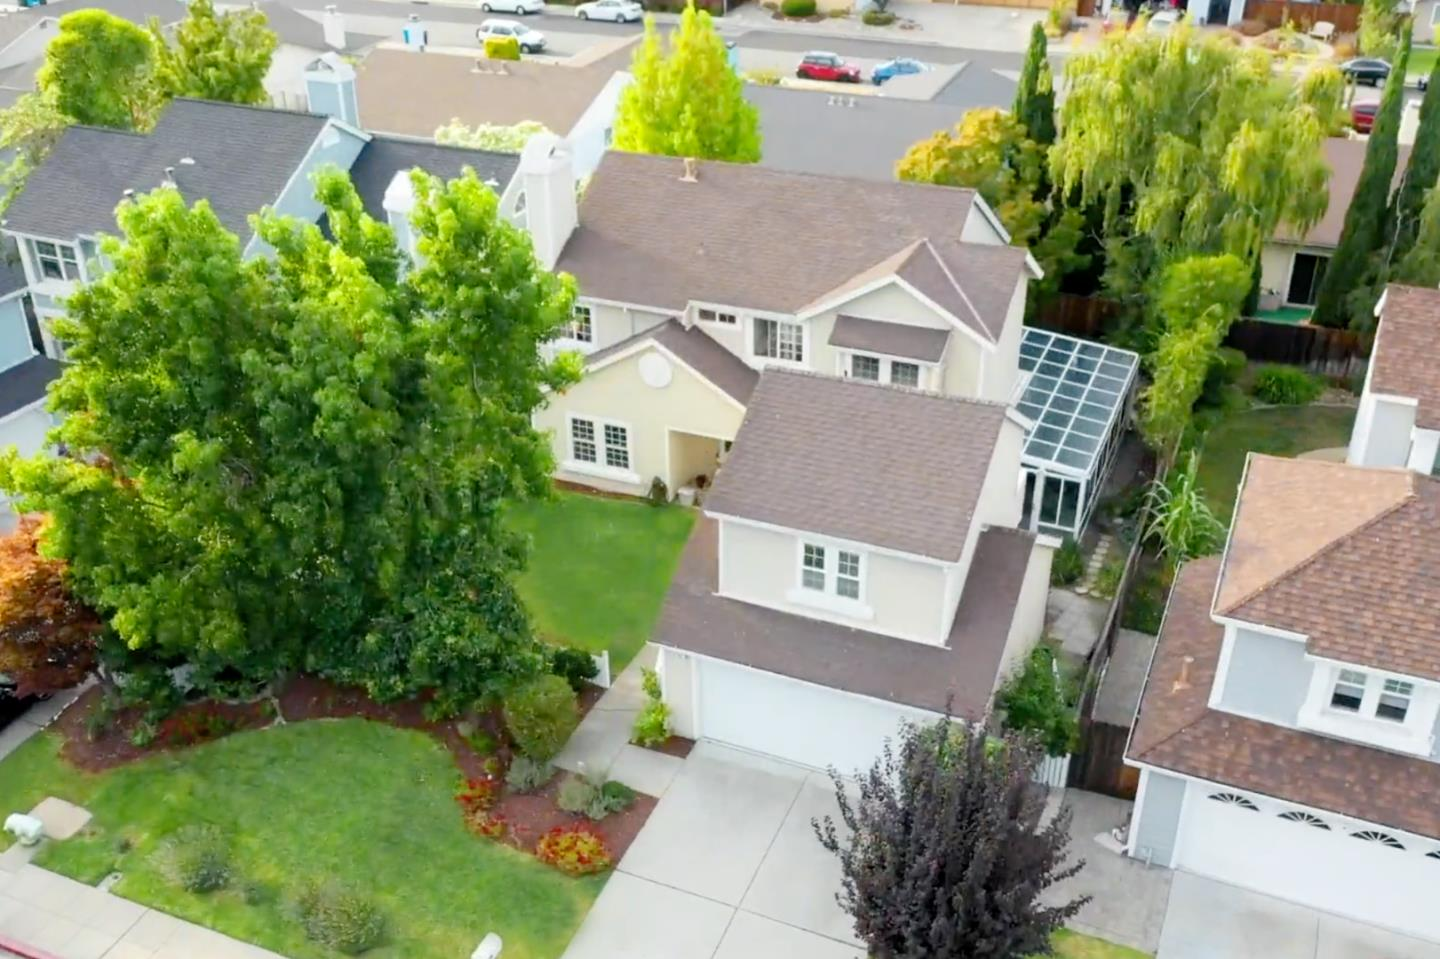 Charming luxury home w/ 3 bed 2.5 bath in the main house, plus a bonus 1 bed 1 bath ensuite, beautifully nestles on a tranquil street in desirable west Foster City! Entrance foyer opens to a spacious living room with a beautiful fireplace, vaulted ceilings and large dining room. Breathtakingly bright and airy large sunroom is equipped w/ full roller shades, perfect space to work from home, or an impressive wine tasting party room! Updated kitchen and a butler pantry, offering plenty of storage spaces. Upstairs are 3 spacious bedrooms & 2 newer updated baths. Private backyard surrounded by trees, flat open outdoor area perfect for entertaining. Bonus ensuite with private entry above the 2 car detached garage, perfect for guests or potential $1600+/- monthly income! Option to join the Port Royal Association, facilities include tennis courts, spa, pool and gym. Prime location close to great schools, hiking trails, shopping, dining and transportation! Welcome Home!